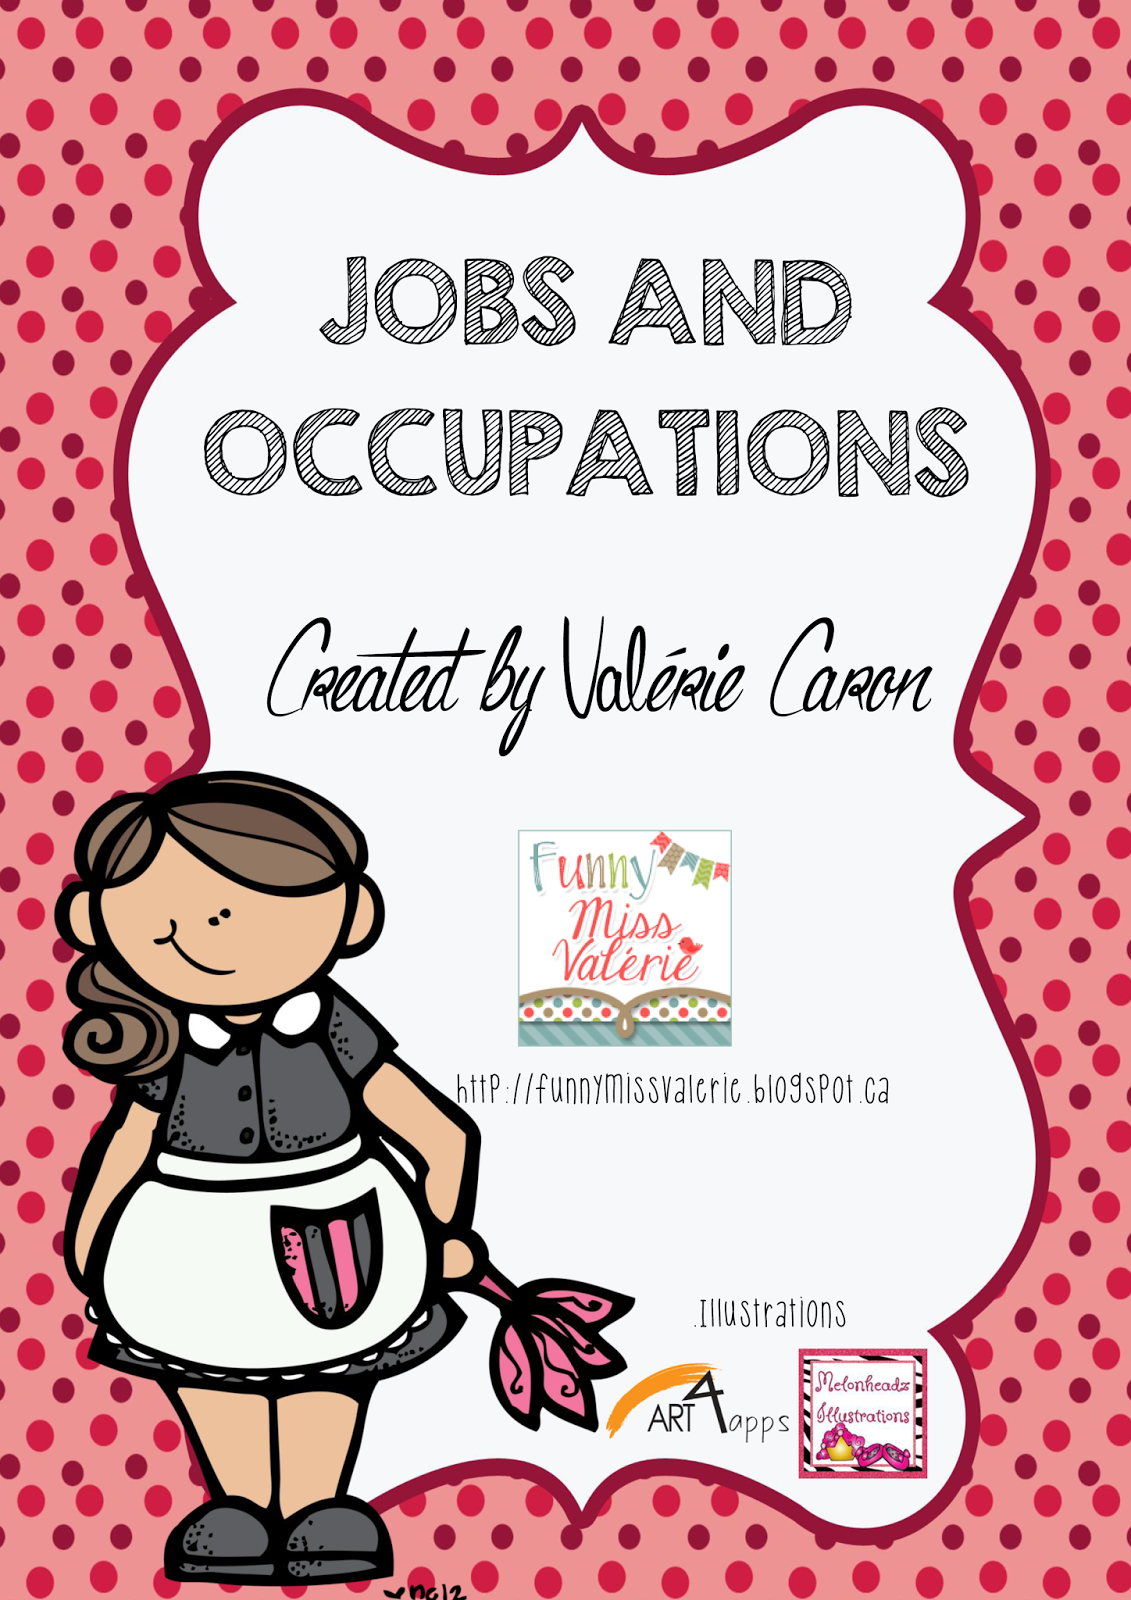 http://www.teacherspayteachers.com/Product/Jobs-and-Occupations-writing-project-1410981